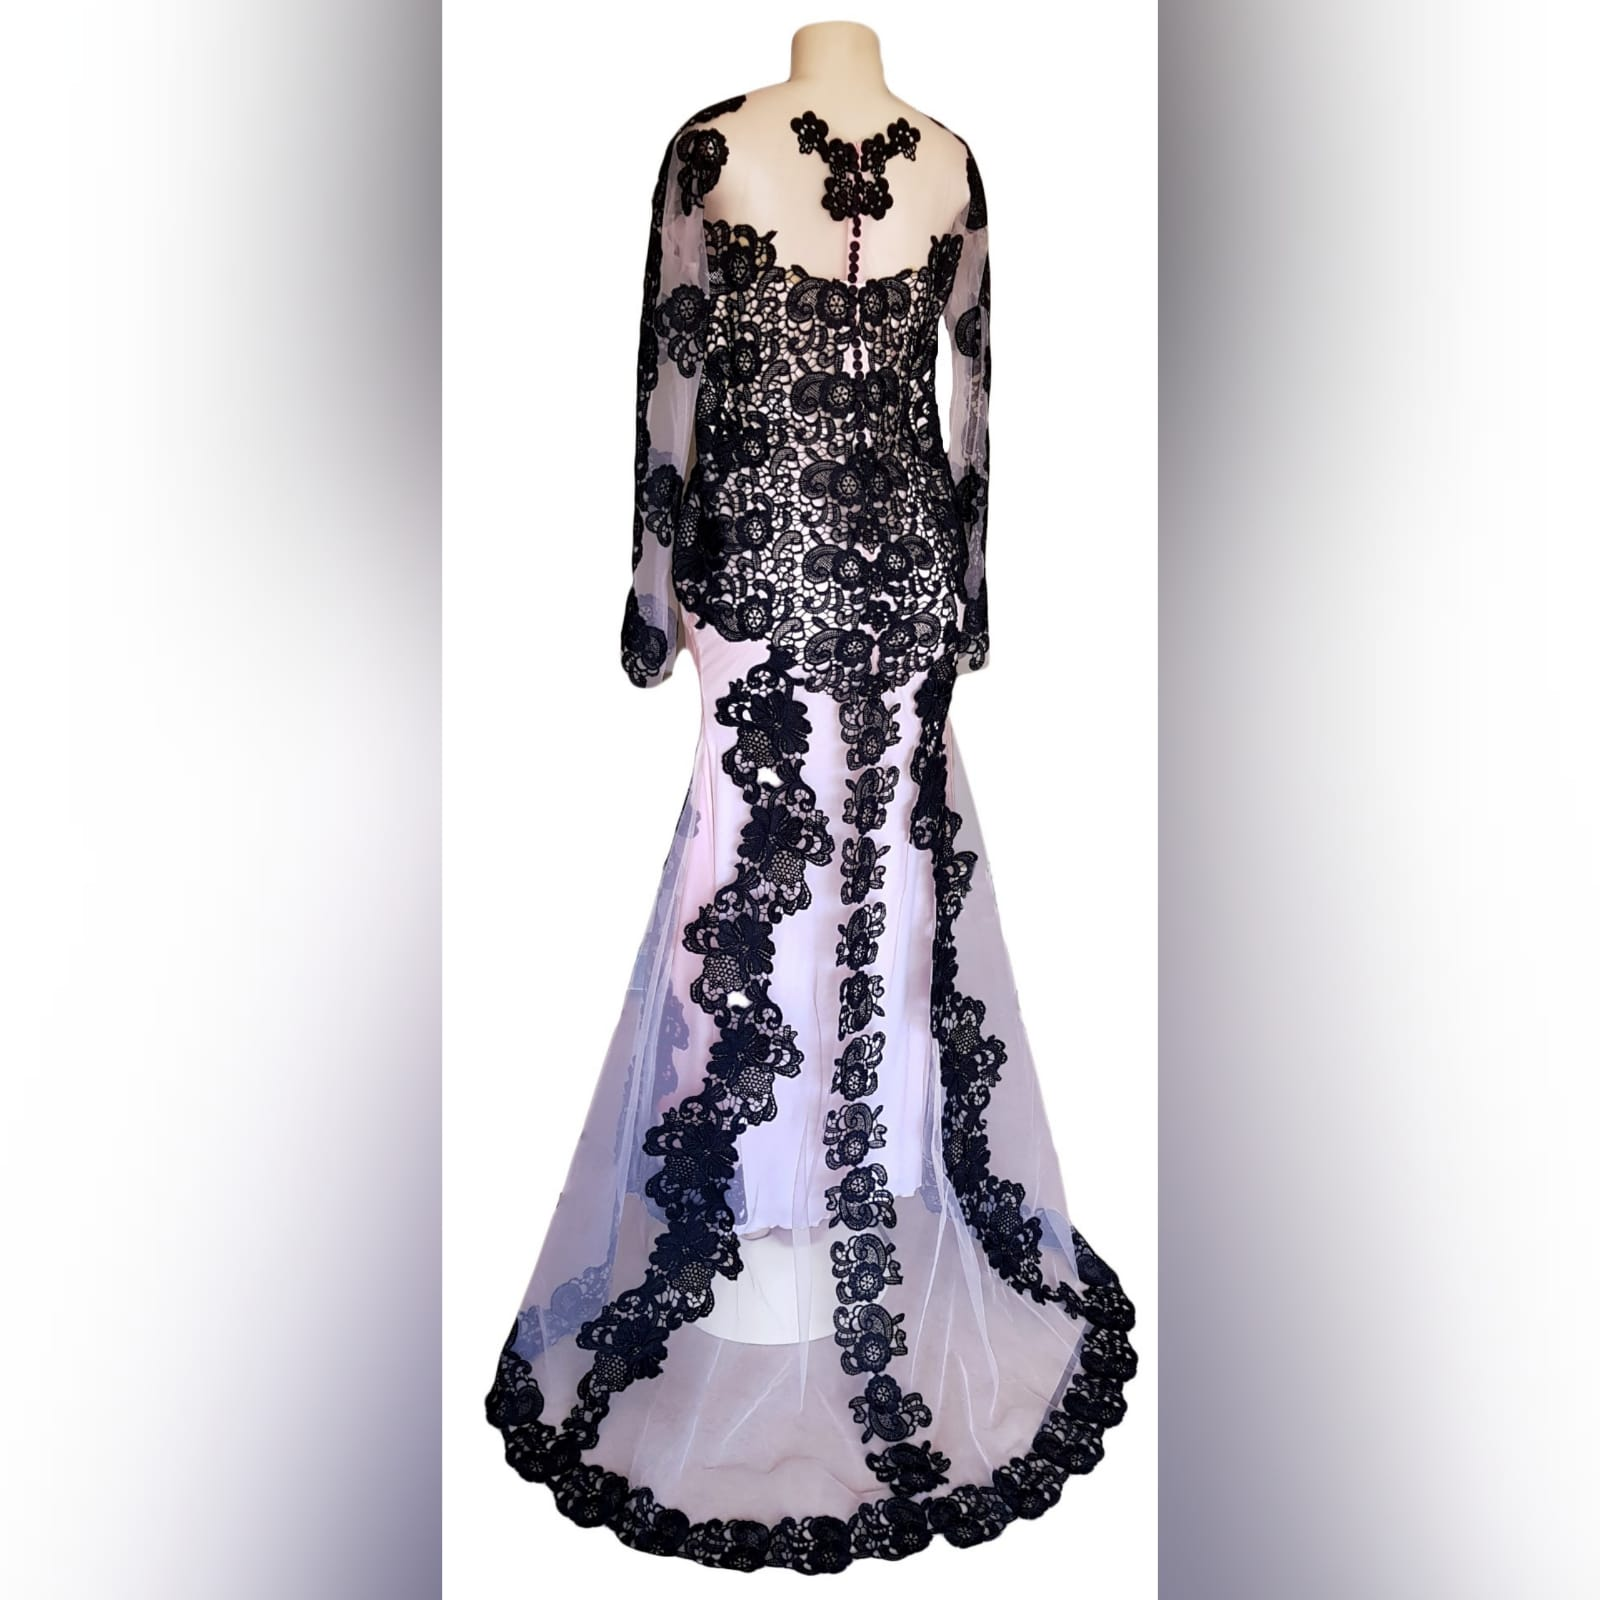 Black & nude lace formal awards ceremony dress 1 black & nude lace formal awards ceremony dress with long illusion lace sleeves, a train and covered buttons for back detail.